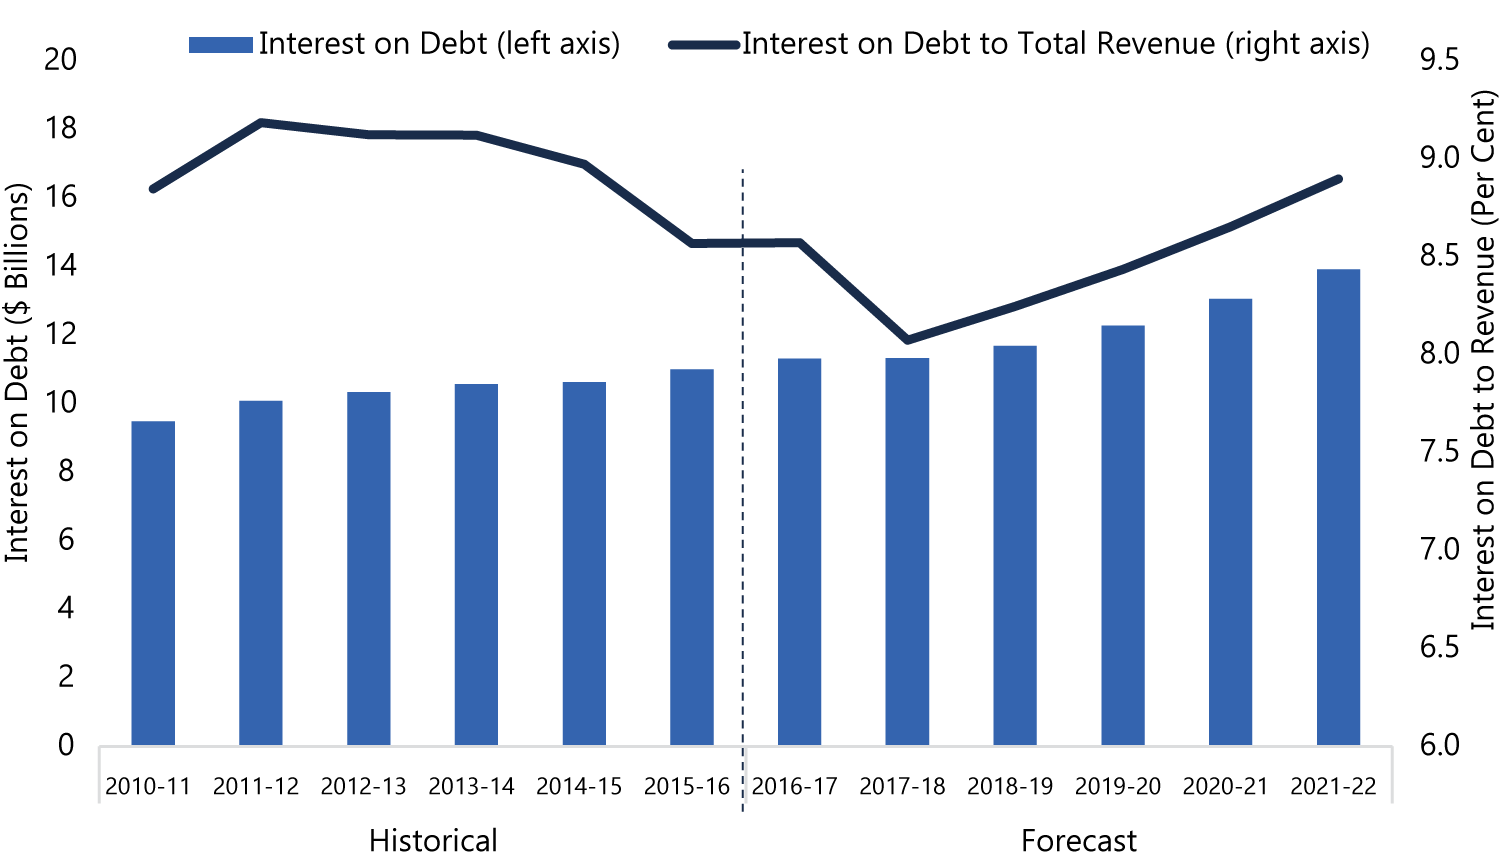 Interest on Debt to Rise Sharply as a Share of Revenues